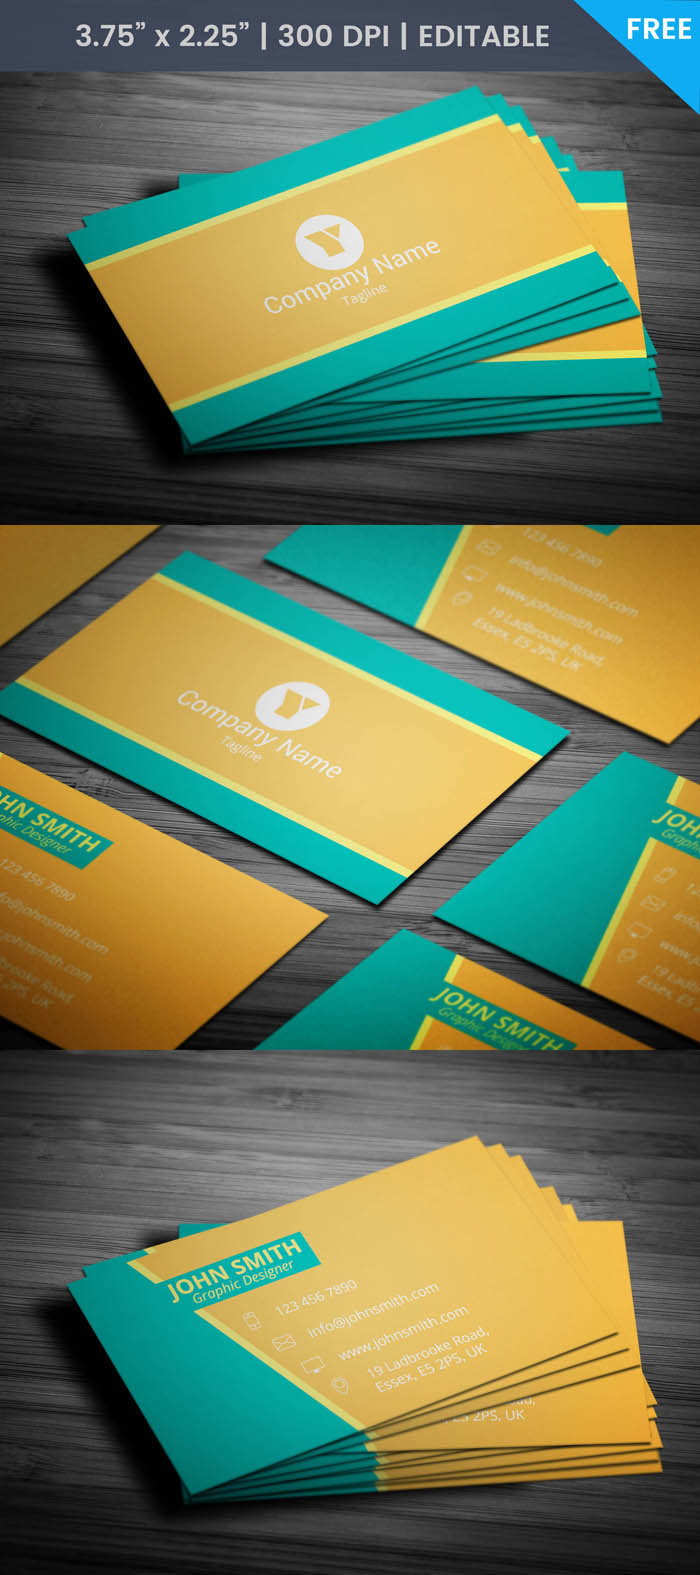 Free Wedding Service Business Card Template